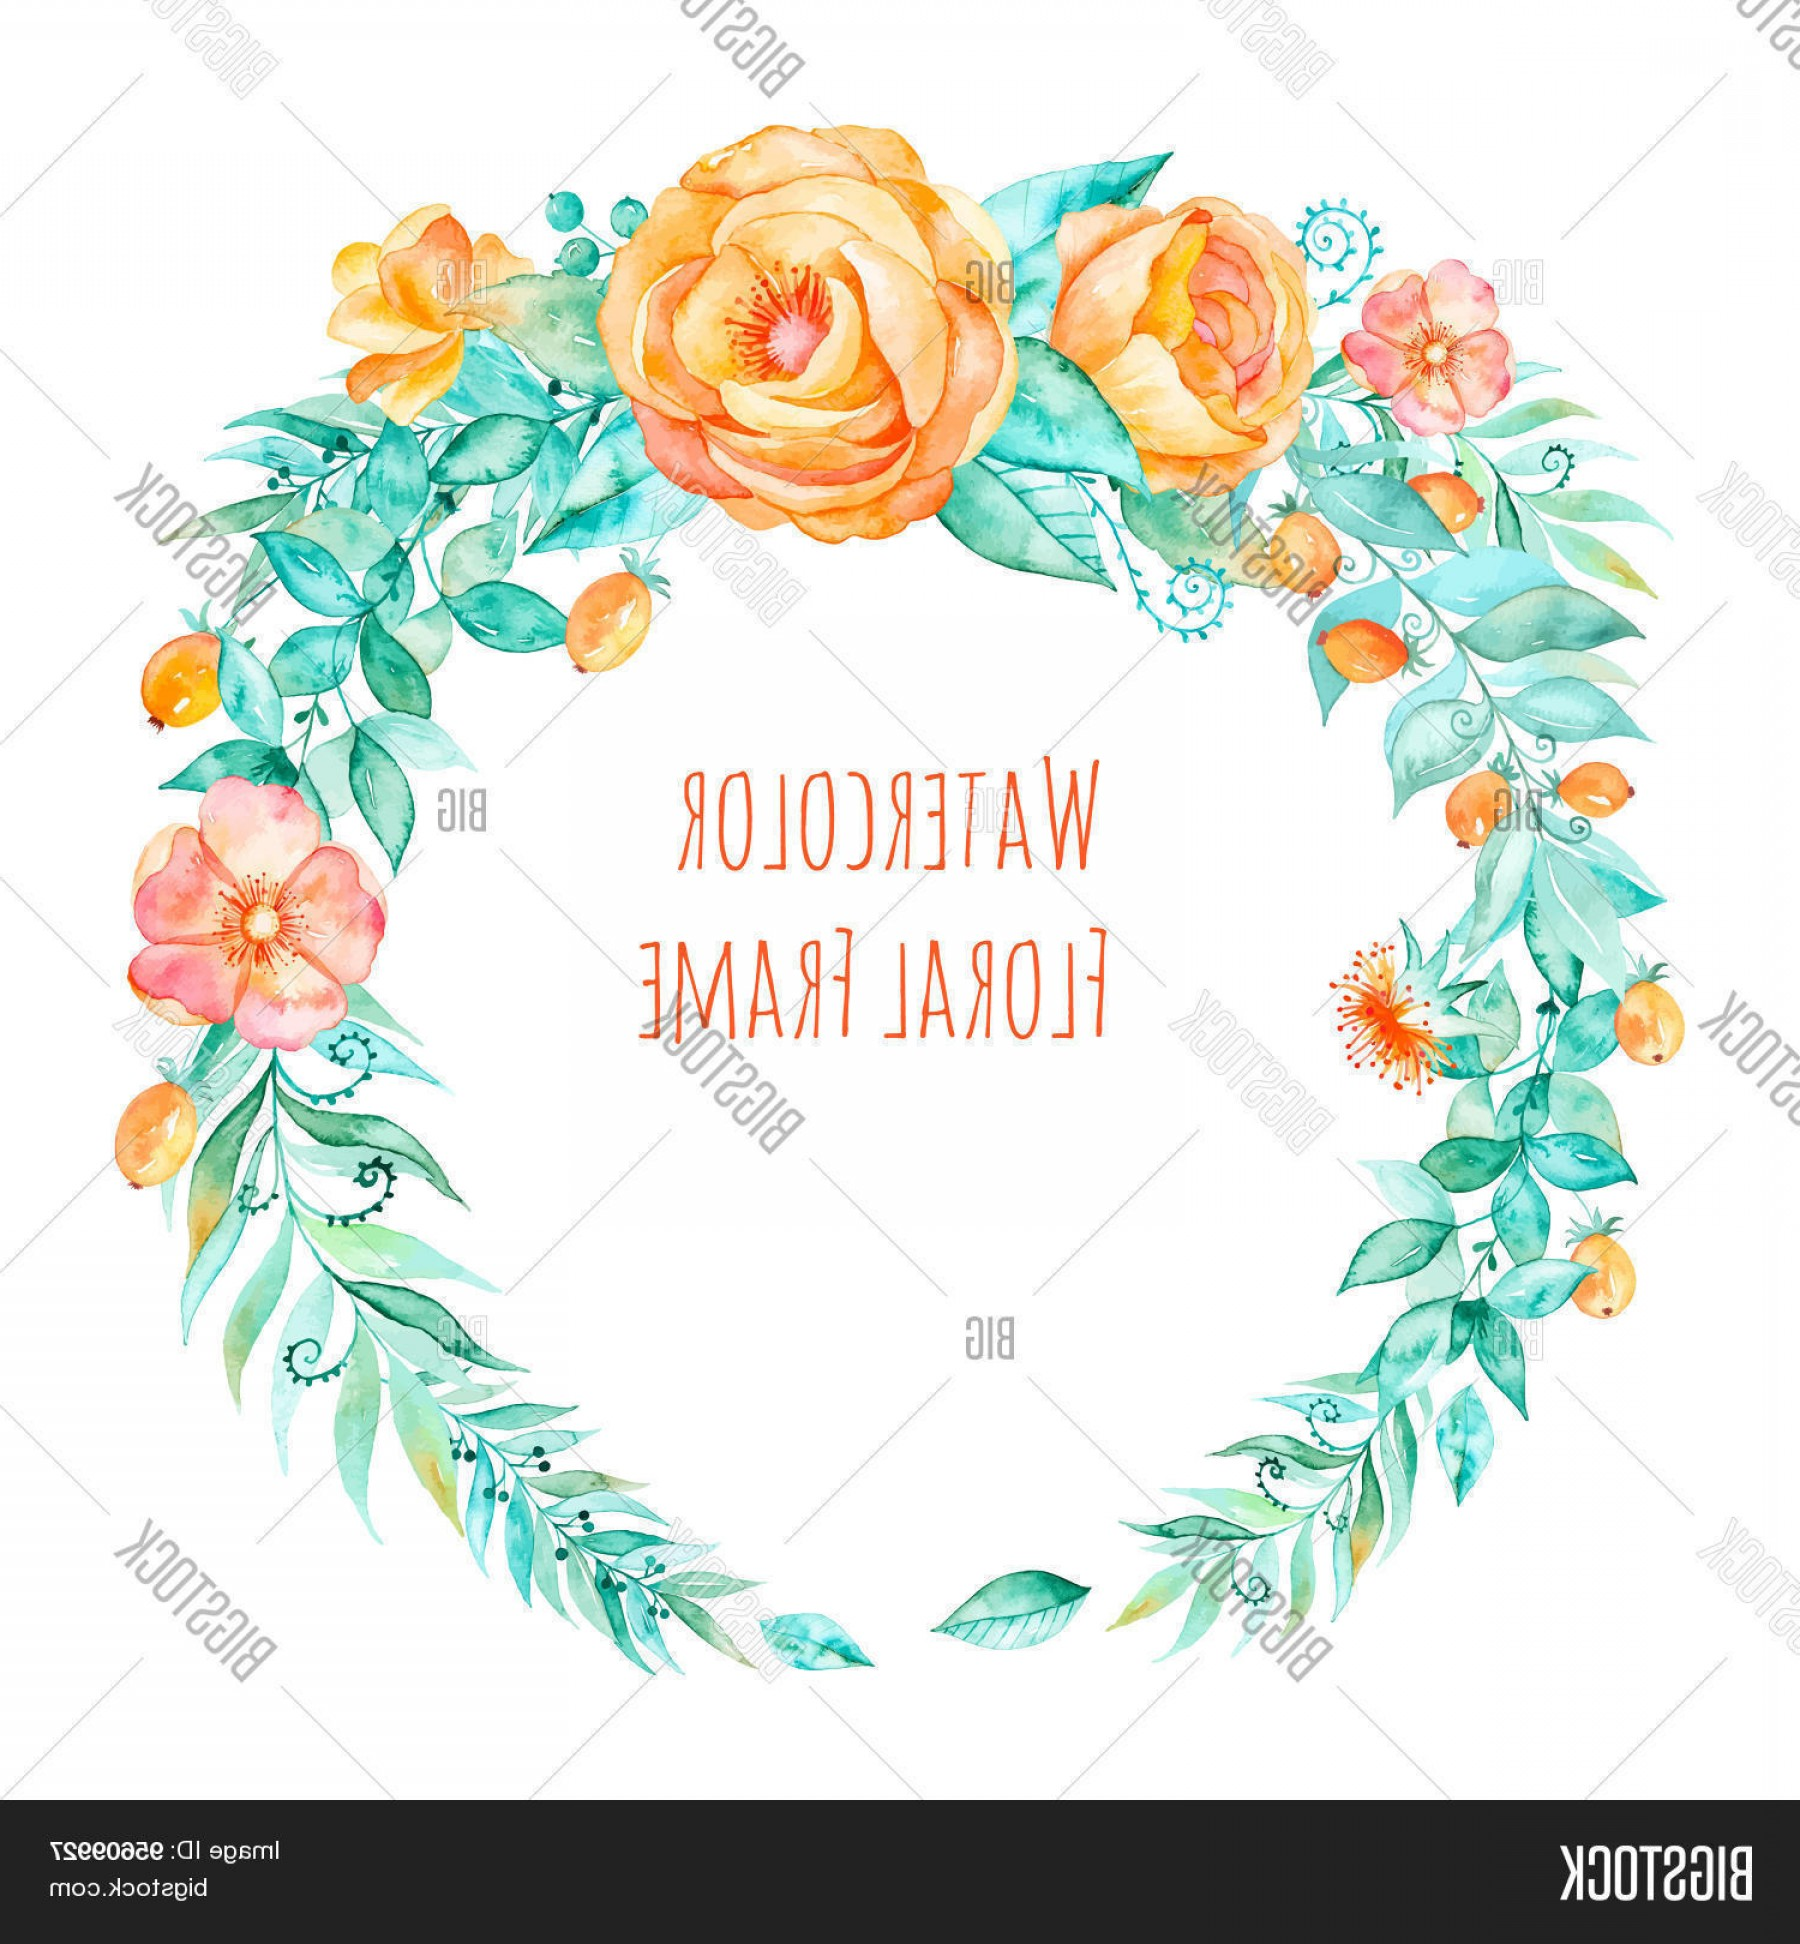 Summer Wreath Free Vector Watercolor: Stock Vector Vector Watercolor Colorful Round Framecfloral Wreath With Spring Summer Flowers And Central White Co